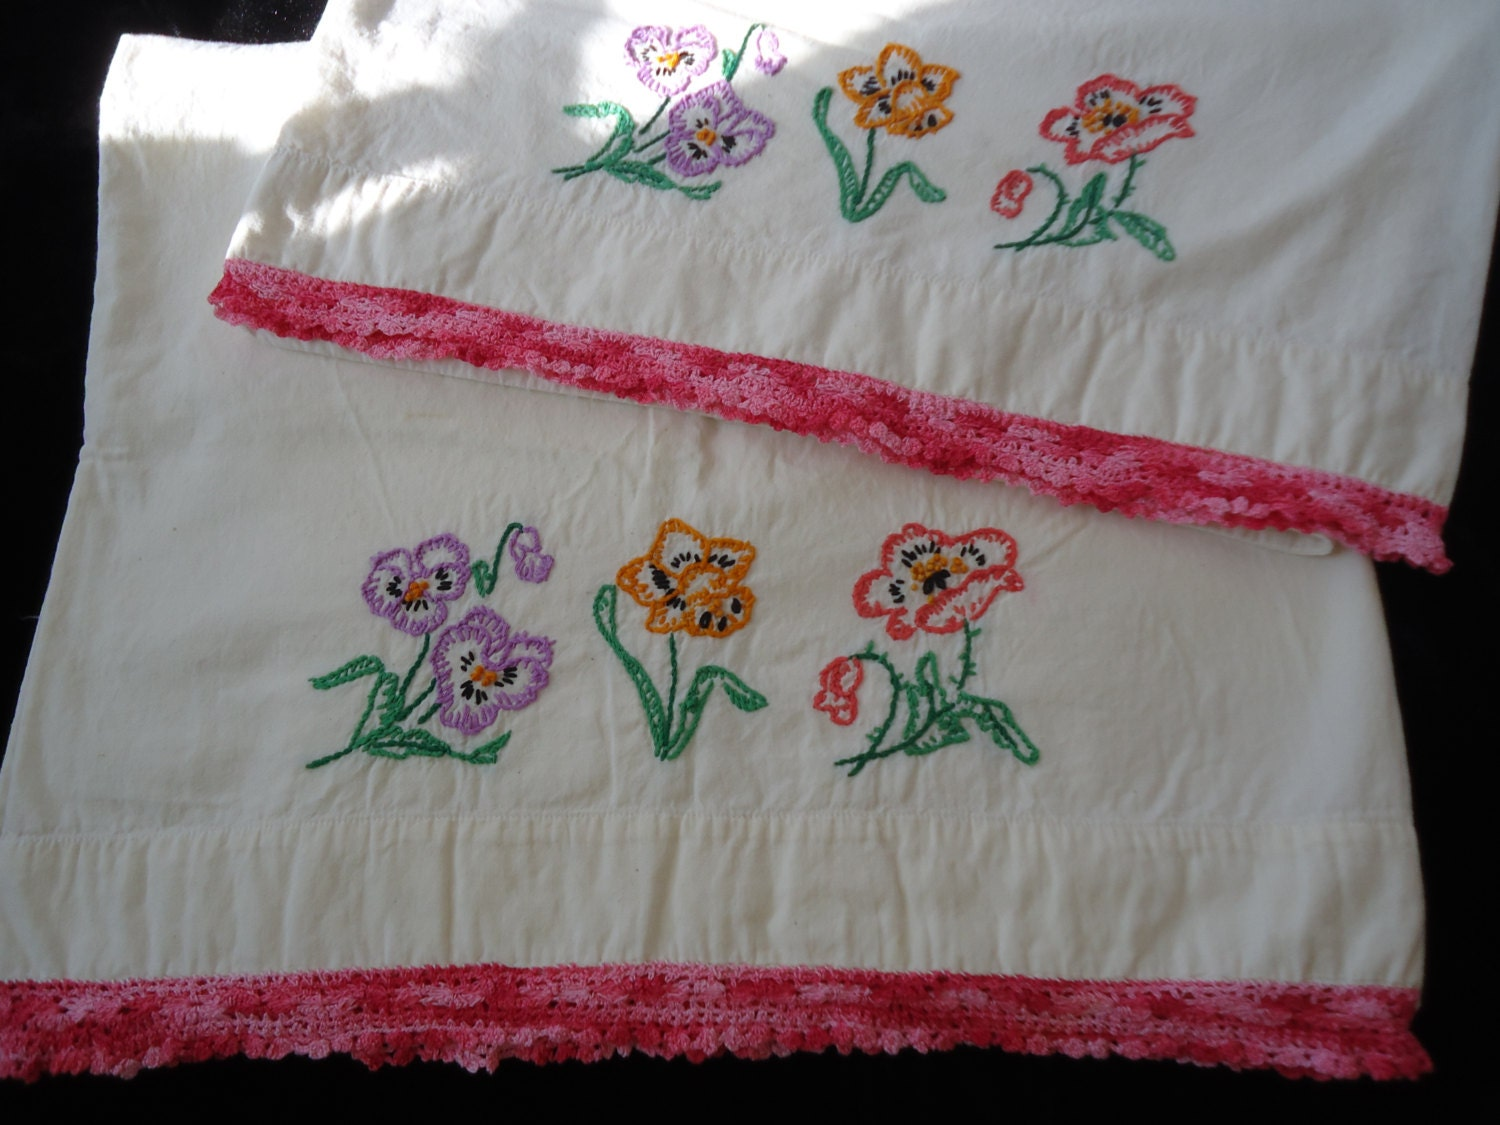 Vintage embroidered pillowcases with flowers